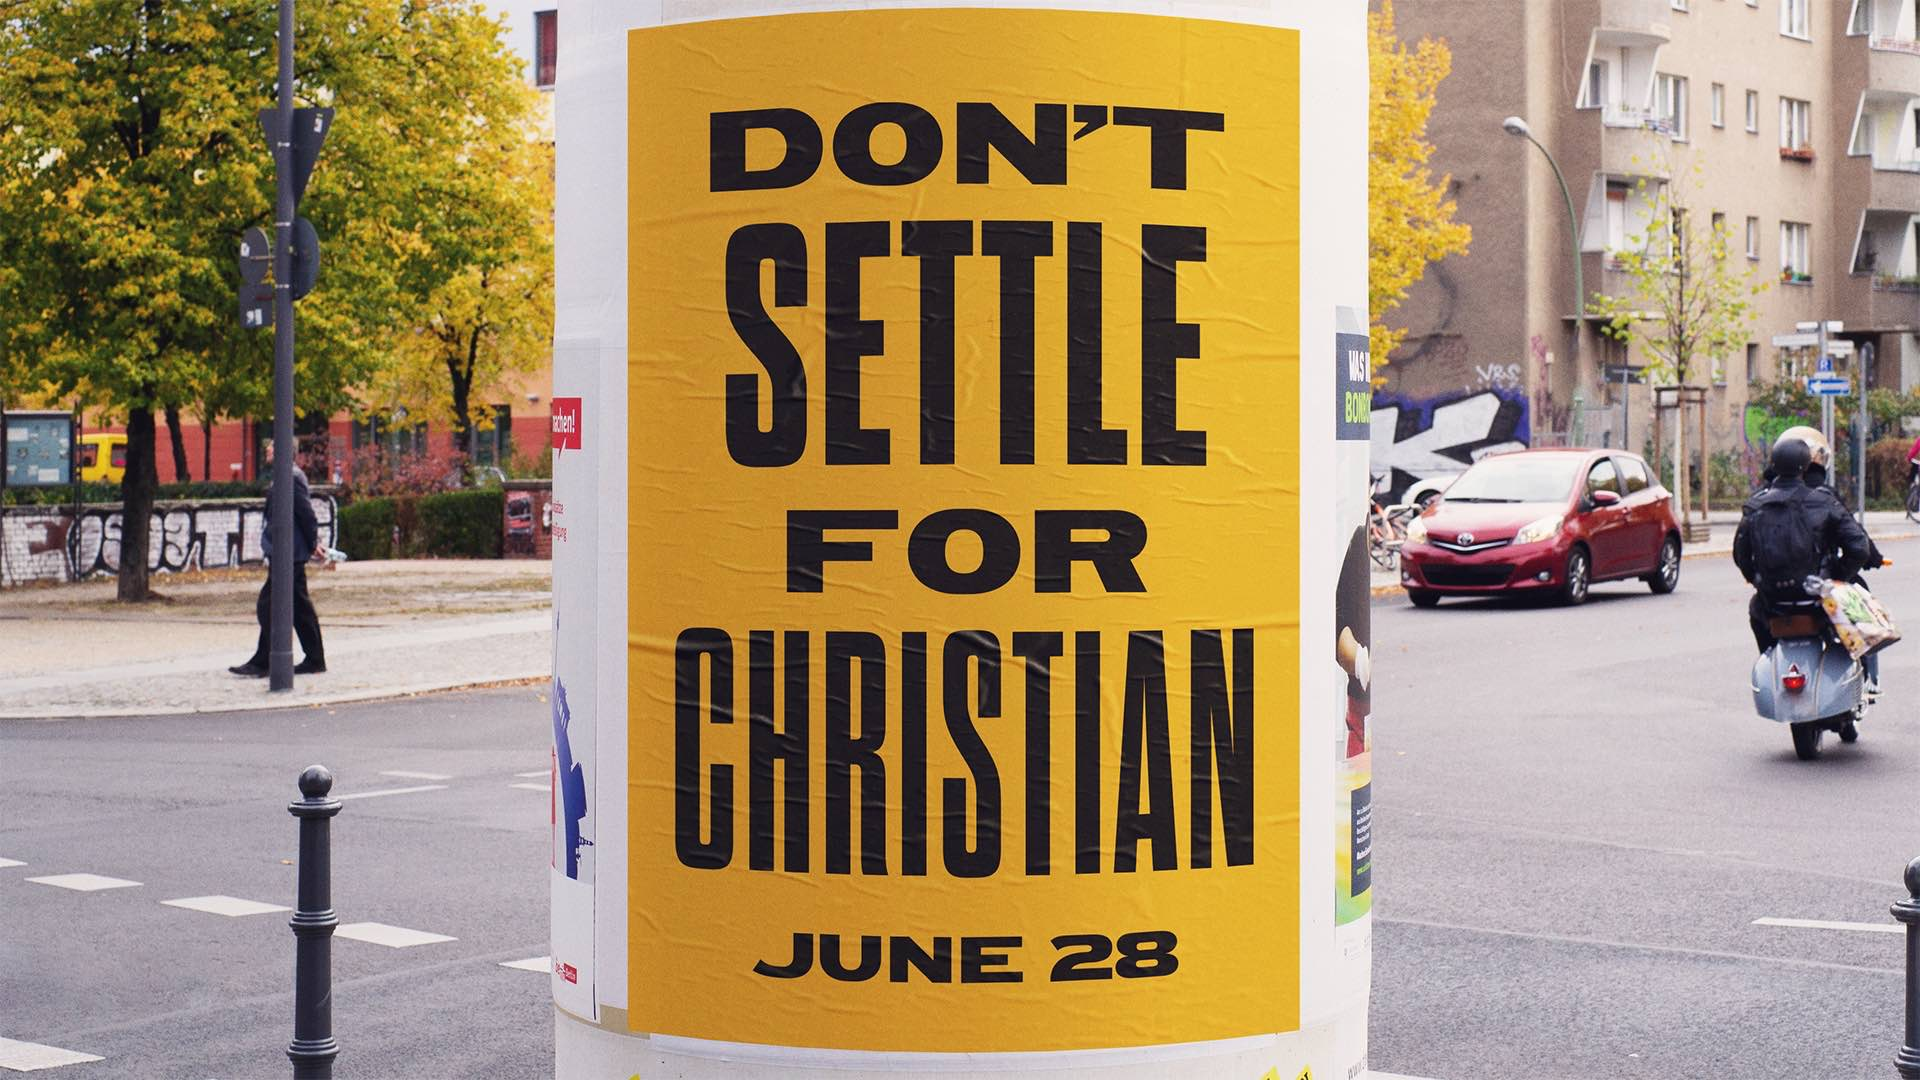 Don't Settle For Christian